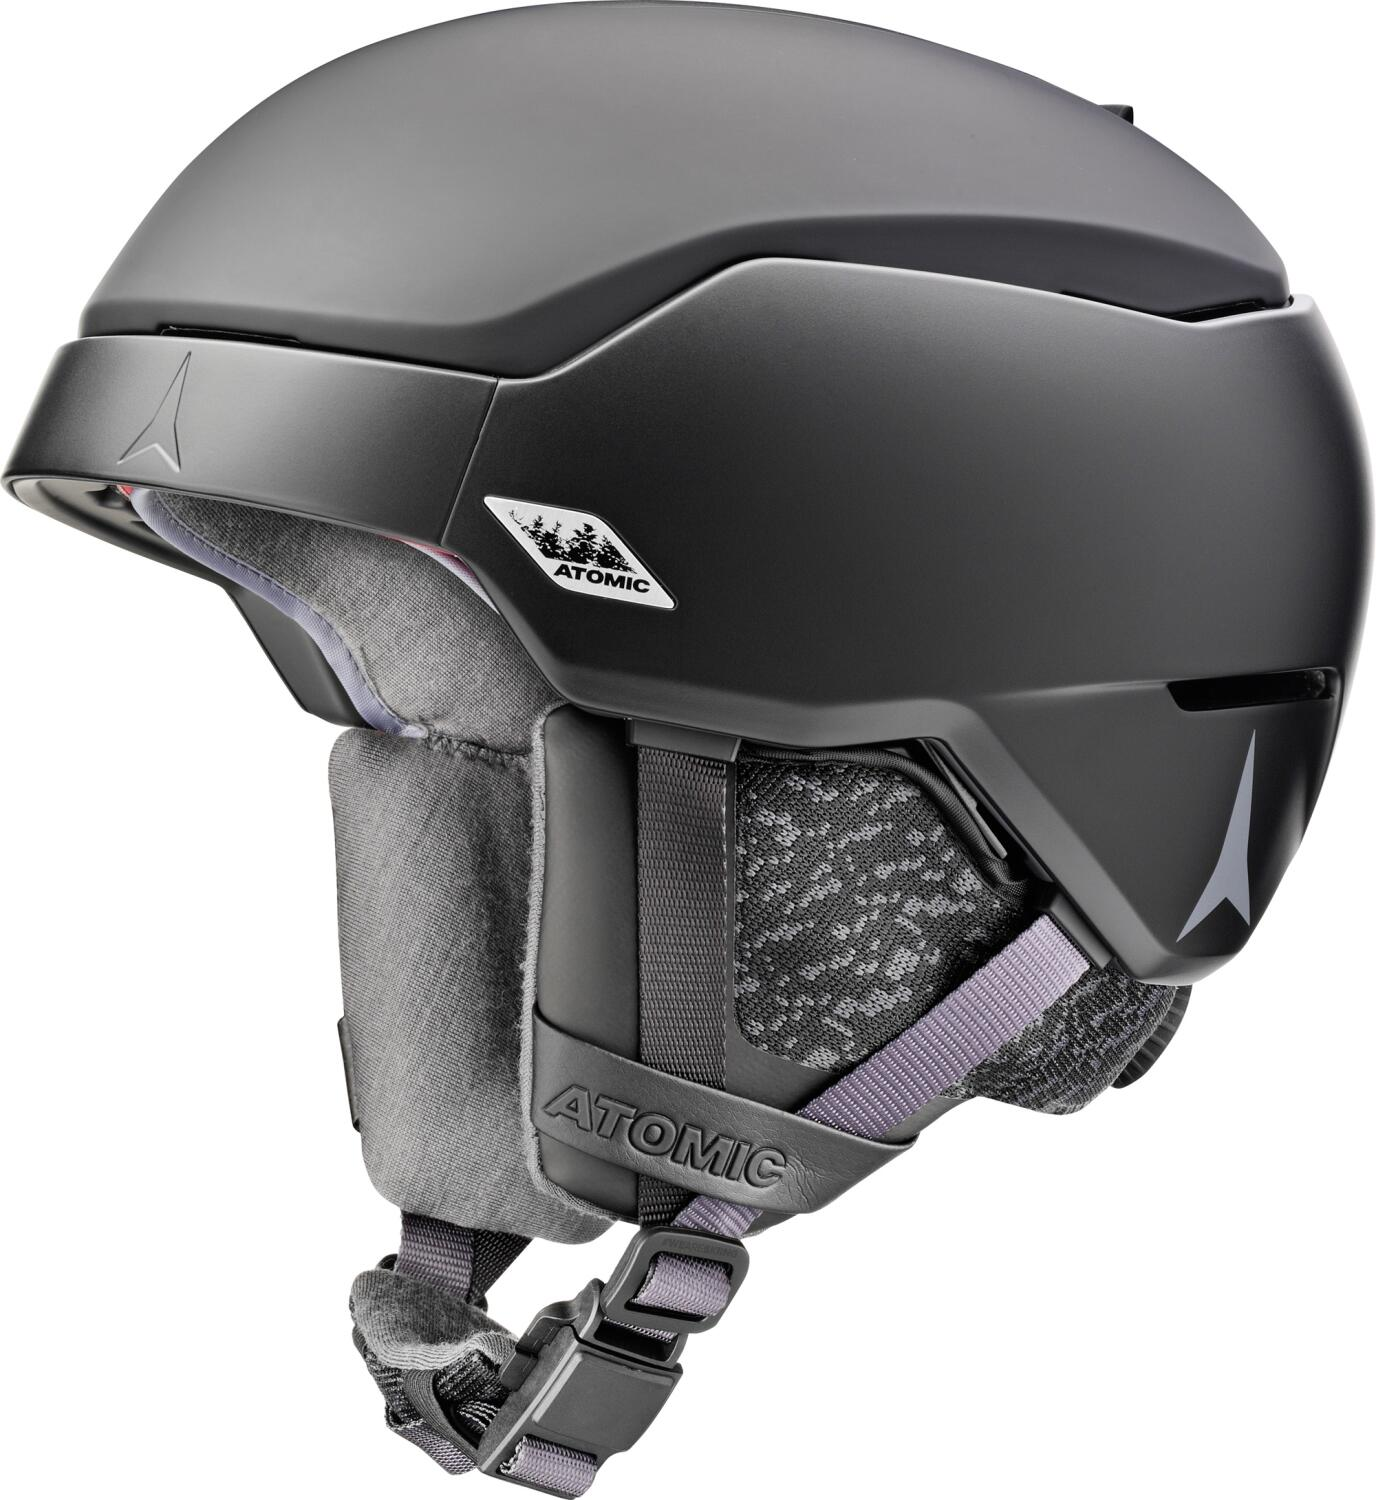 atomic-count-amid-skihelm-gr-ouml-szlig-e-51-55-cm-black-